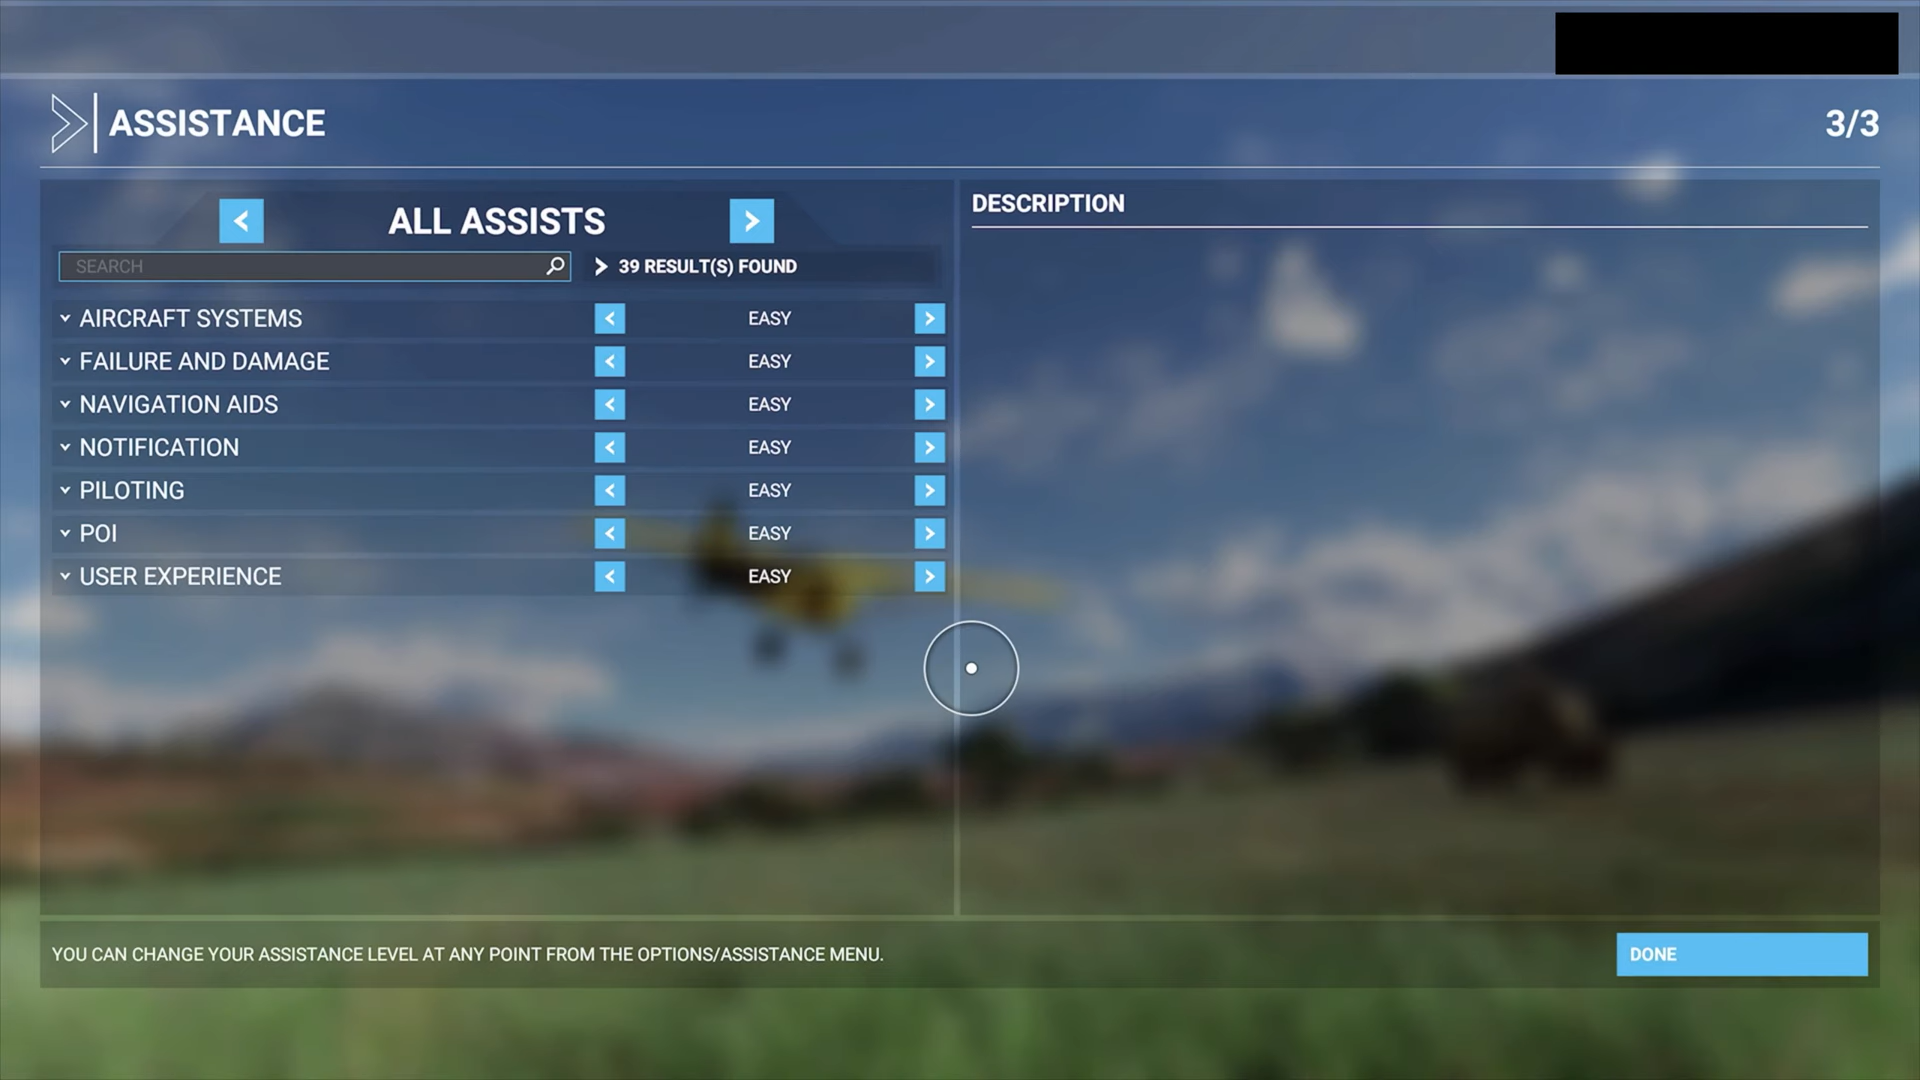 A screenshot showing the All Assists options in menu.